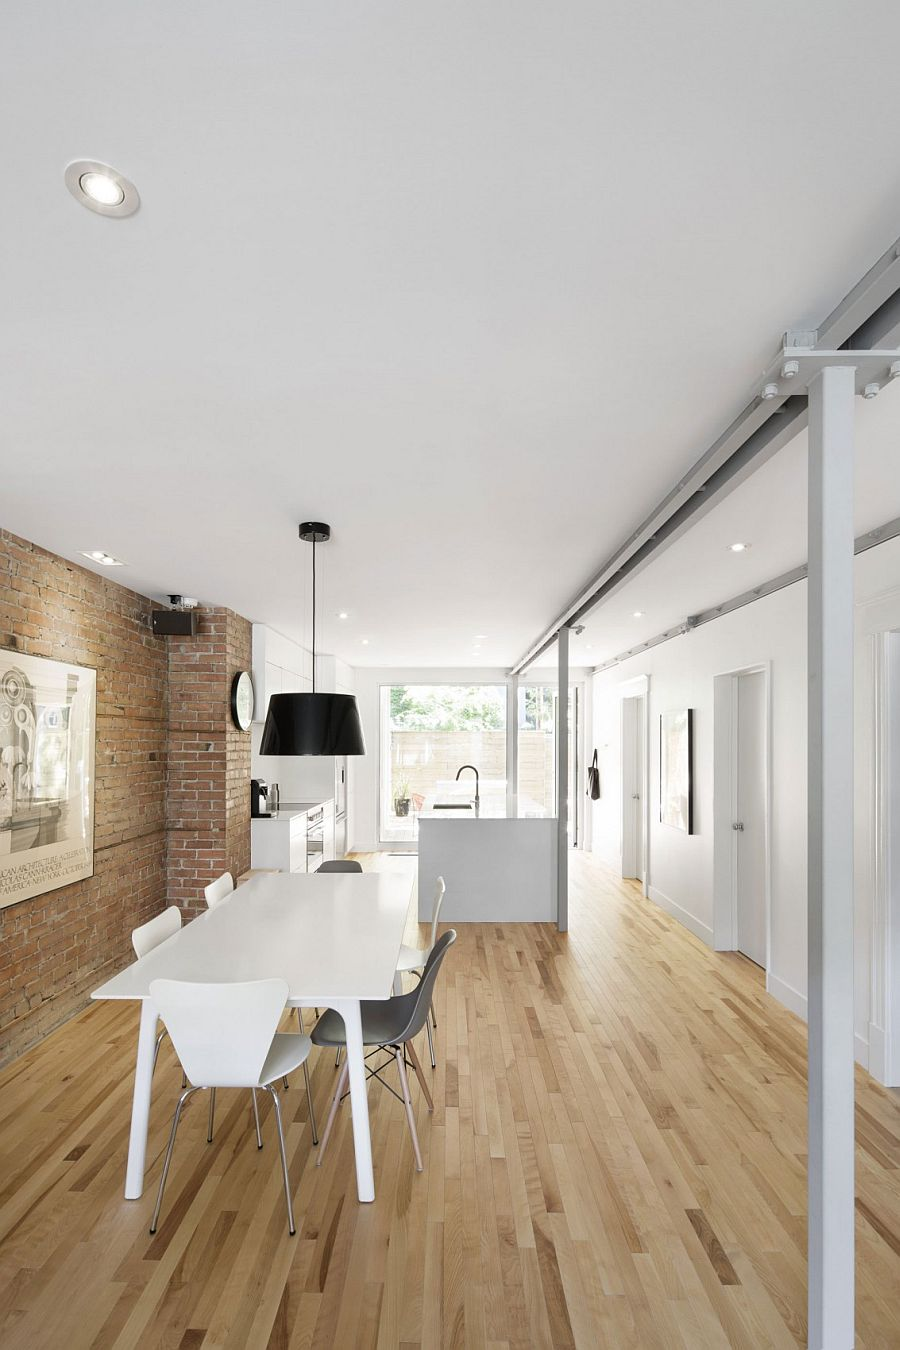 Natural birch flooring and exposed brick wall give the interior a cozy vibe